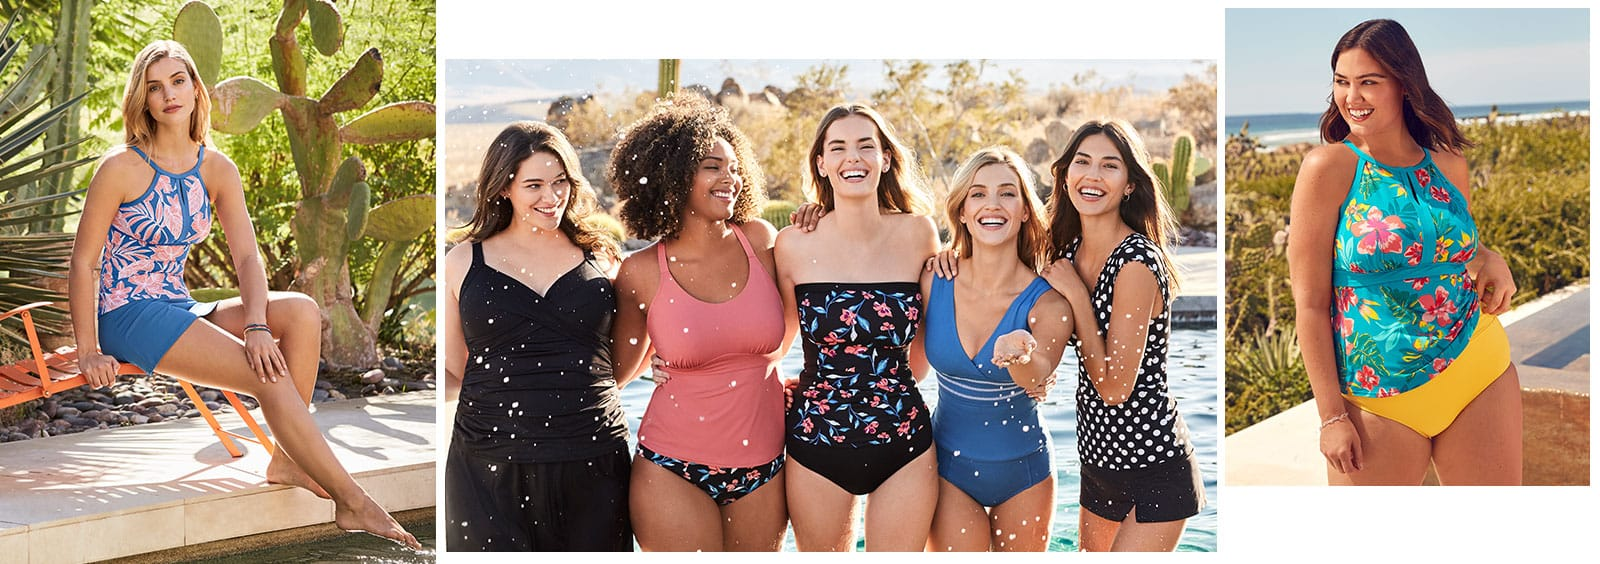 Skirted Bathing Suits vs. Bathing Suits with Shorts | Lands' End